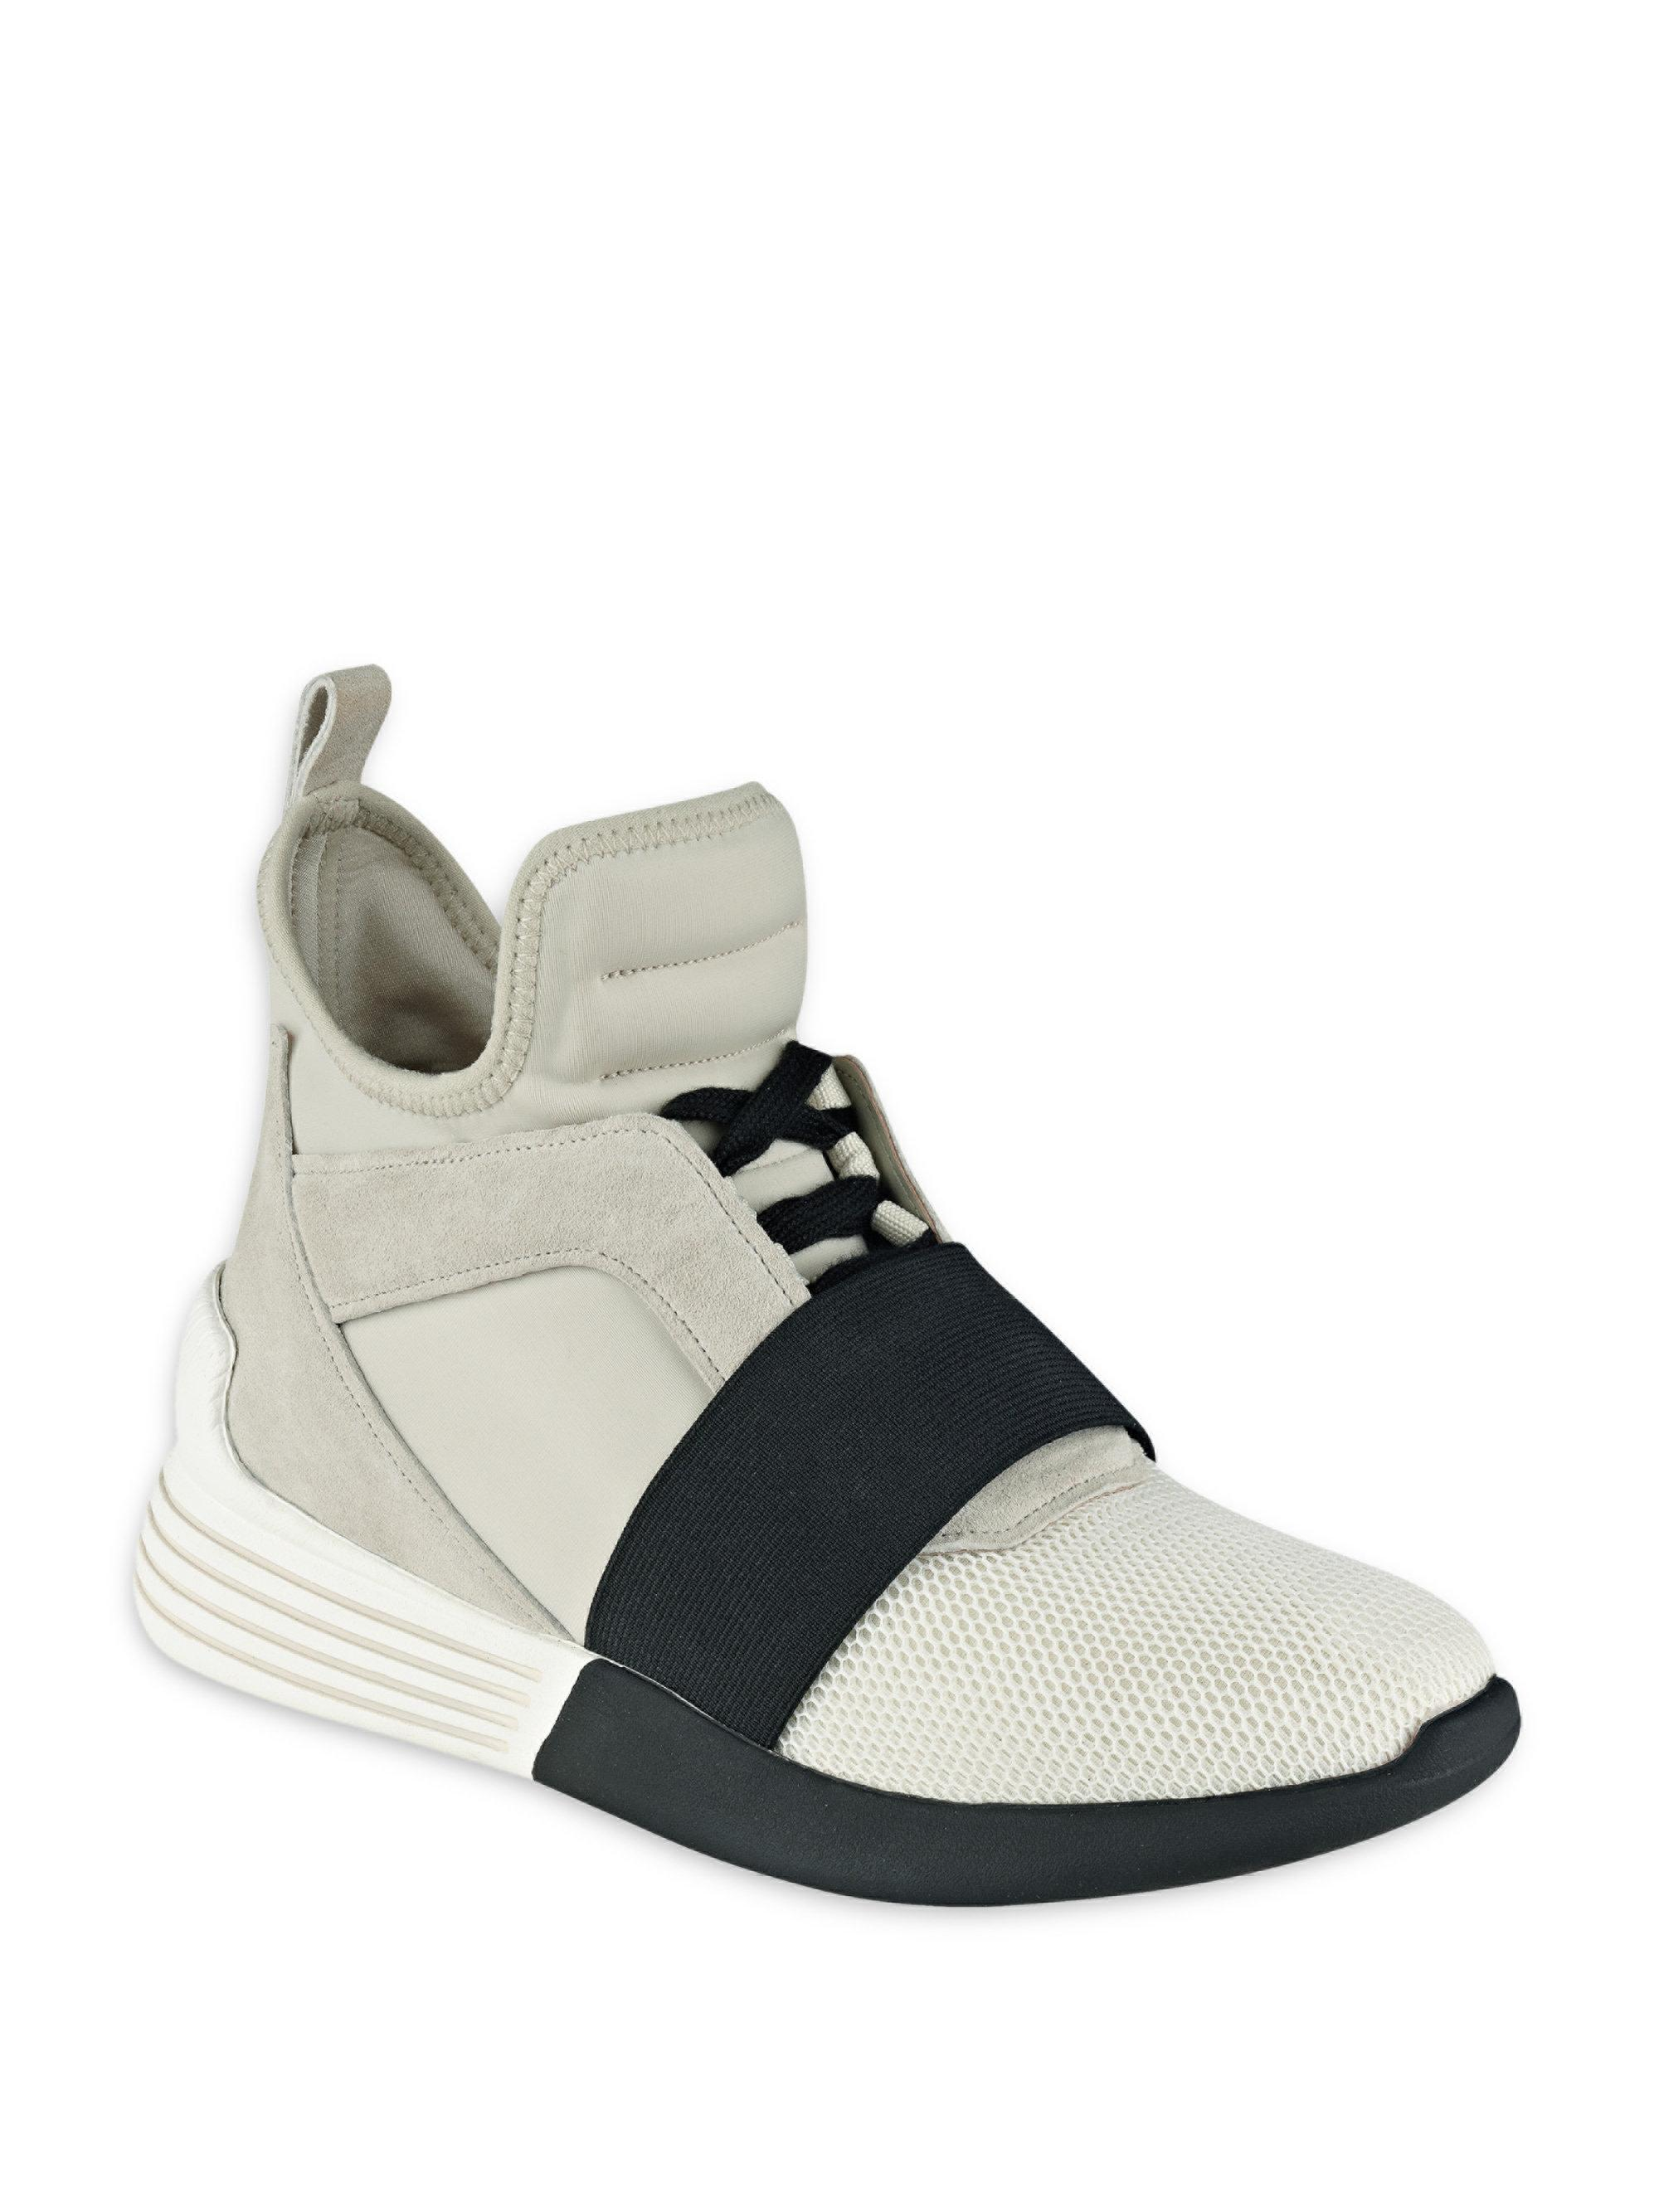 Lyst - Kendall + Kylie Braydin High-top Sneakers in Blue f83b7e216